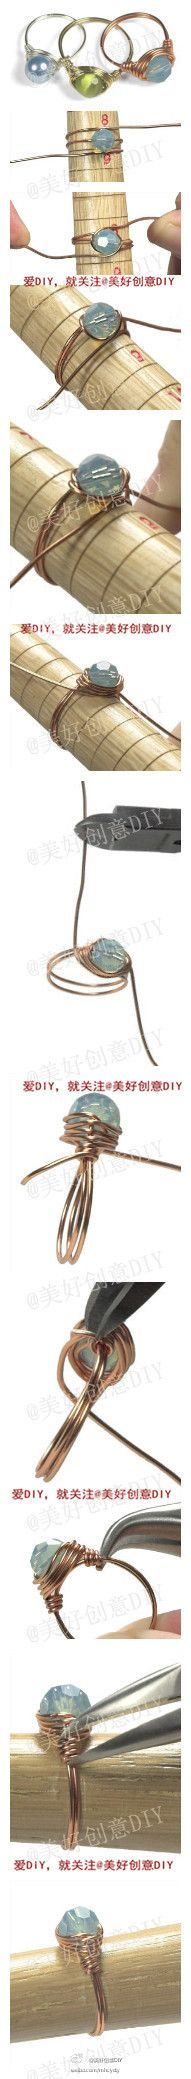 Wire-wrapped ring tutorial:  I can't read the instructions, but the pictures are very helpful.